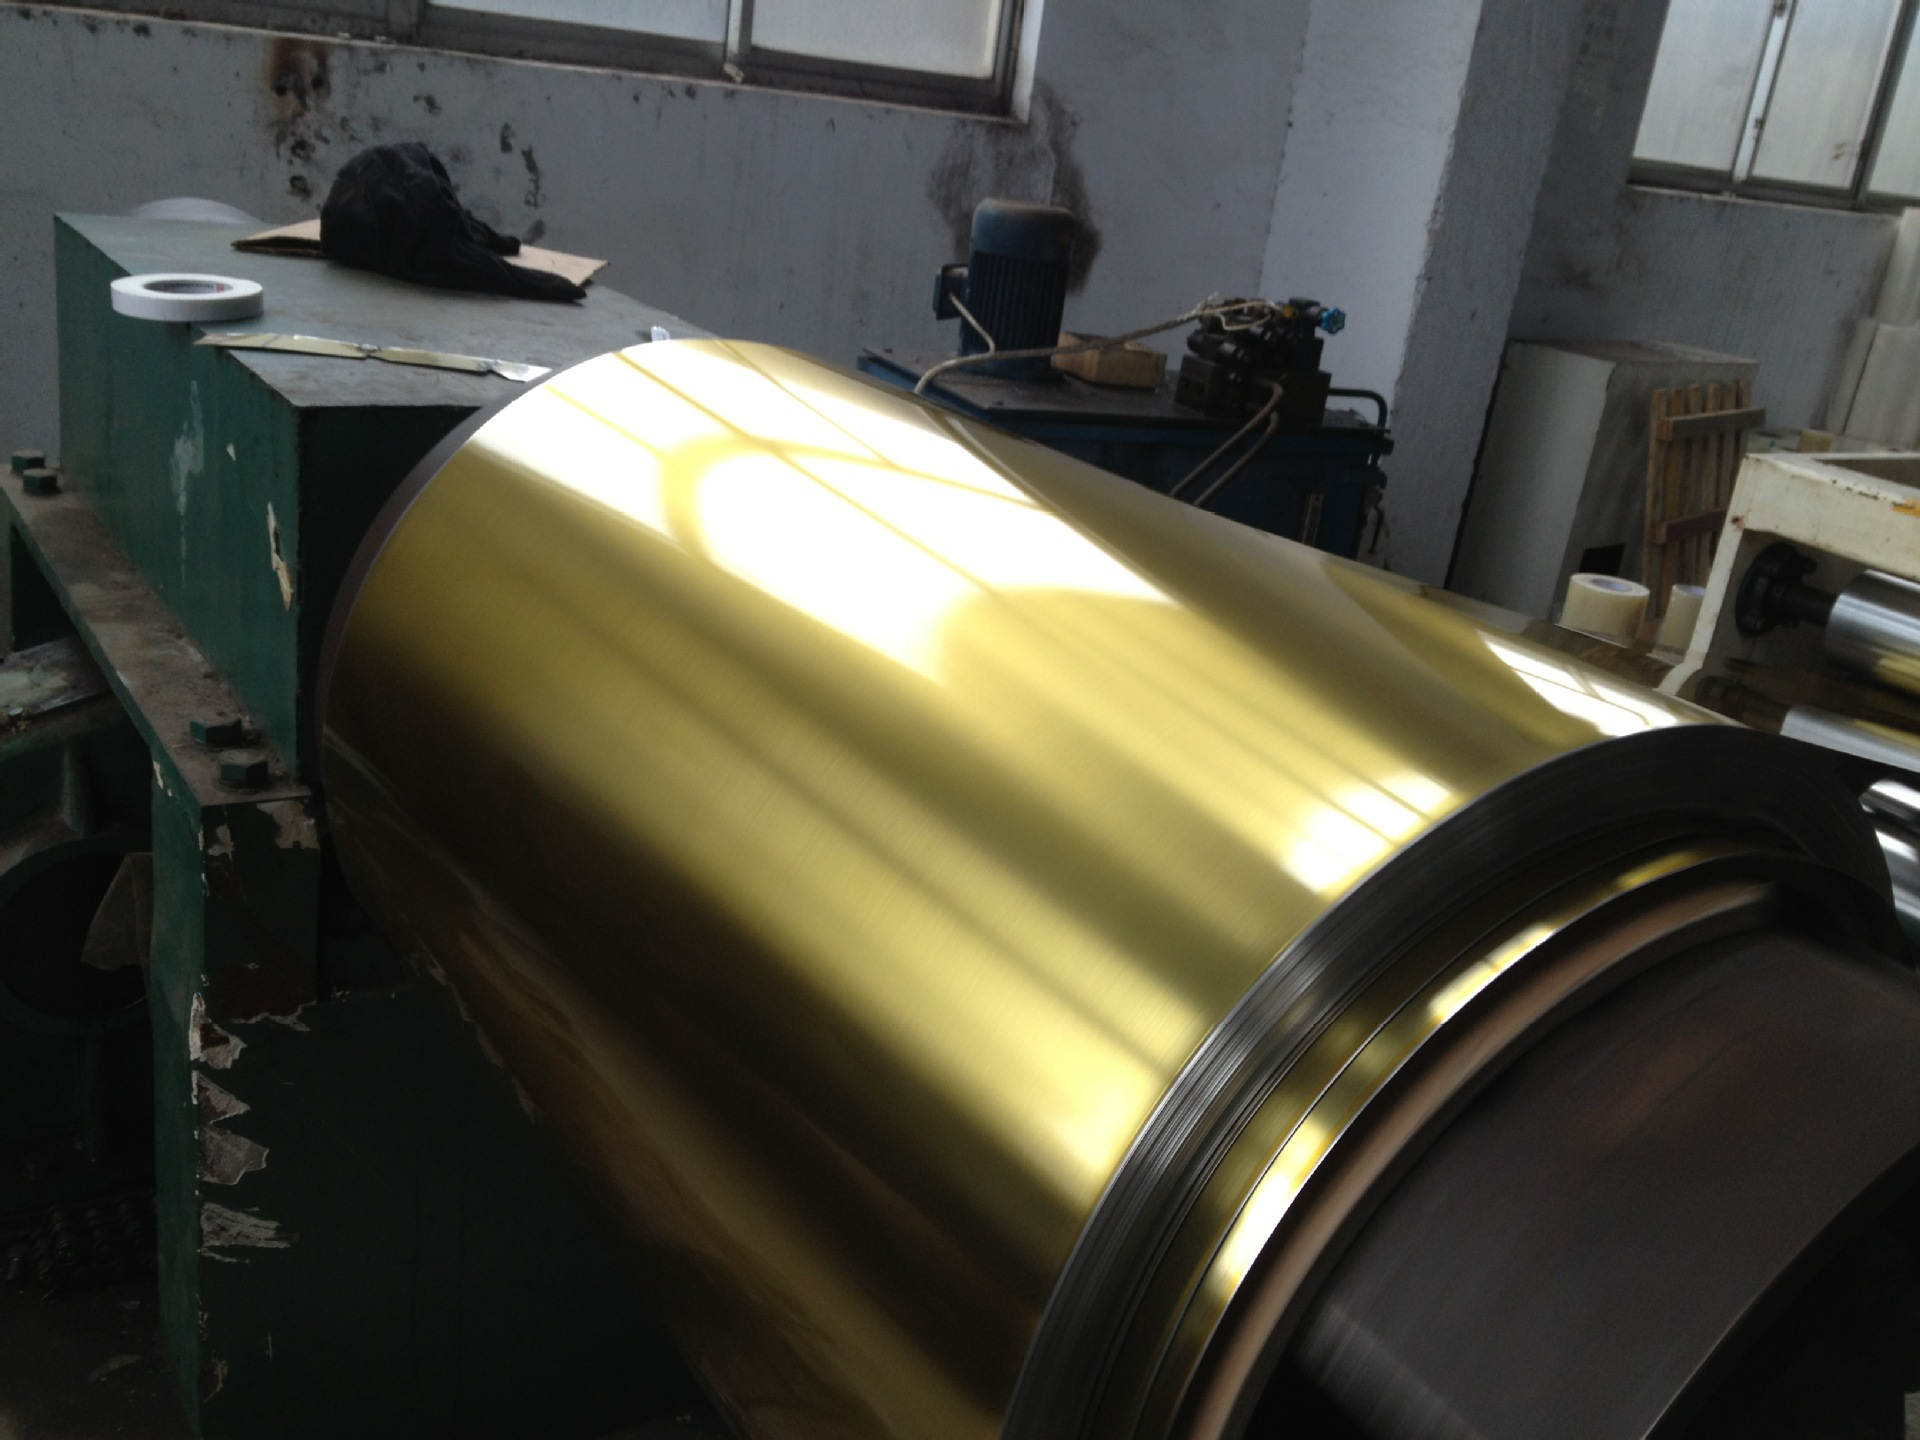 Vải Visco (Rayon)  Coated iron, tinplate, cold-rolled strip steel coated painted yellow